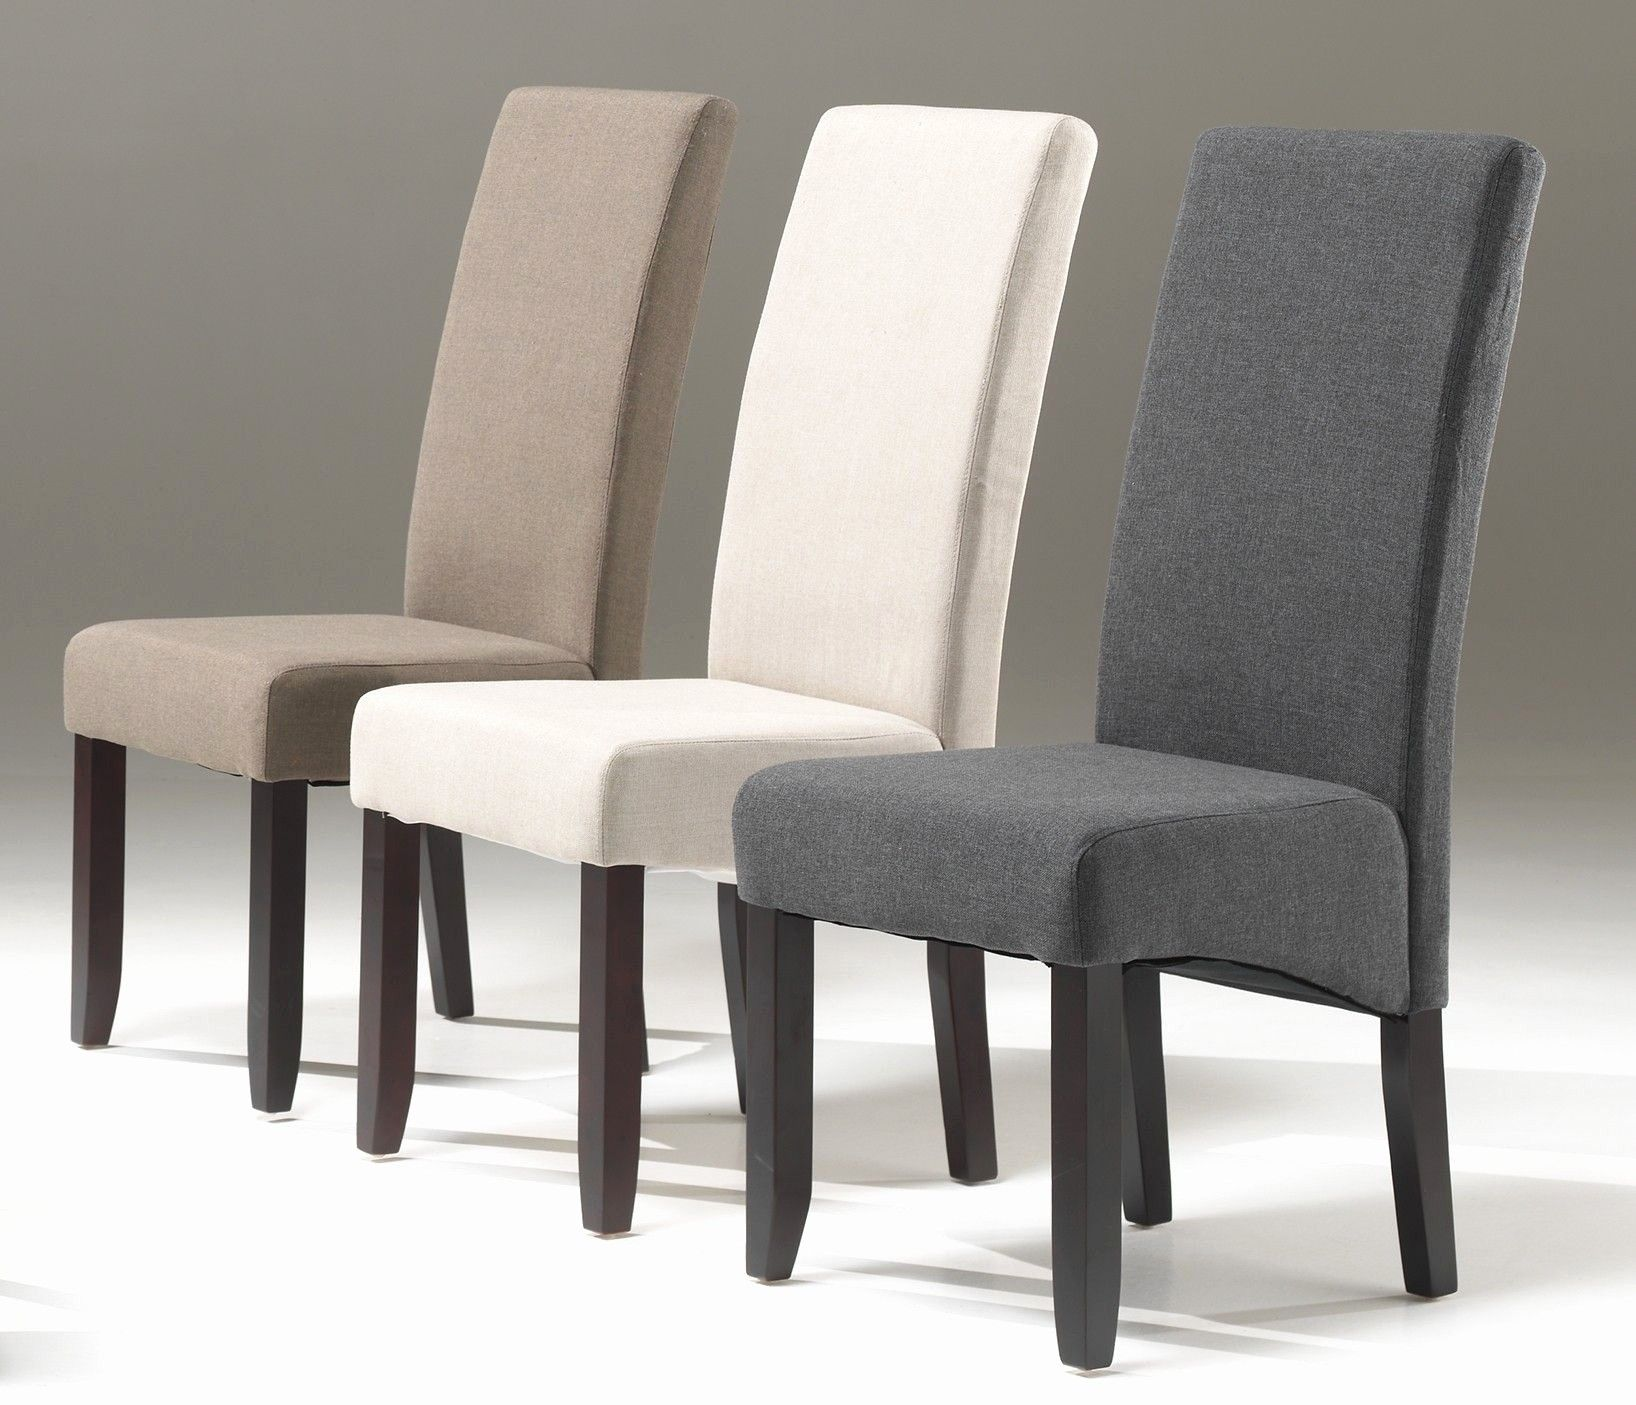 Unique Chaise Contemporaine Conforama Dining Room Chairs Chair